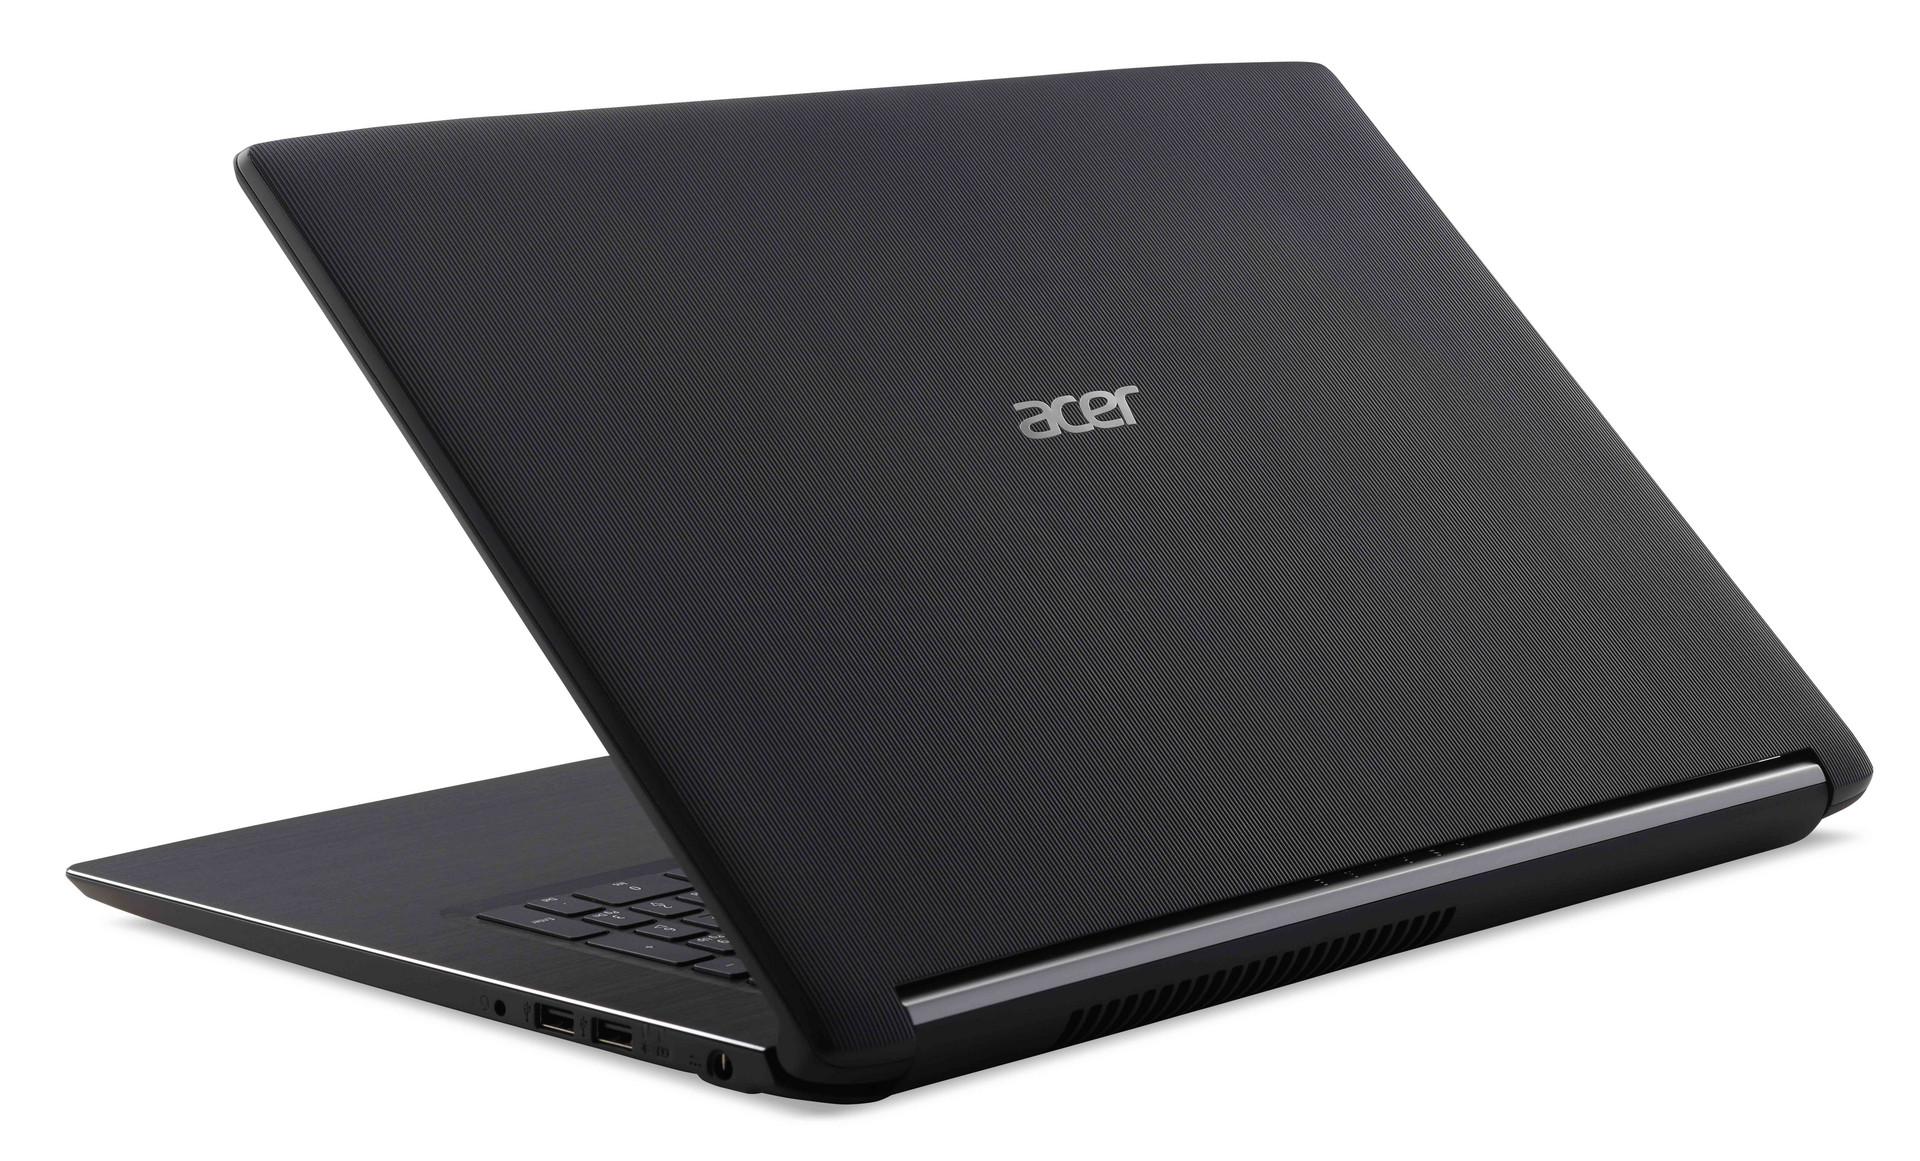 Image Result For Gaming Laptop For Video Editing